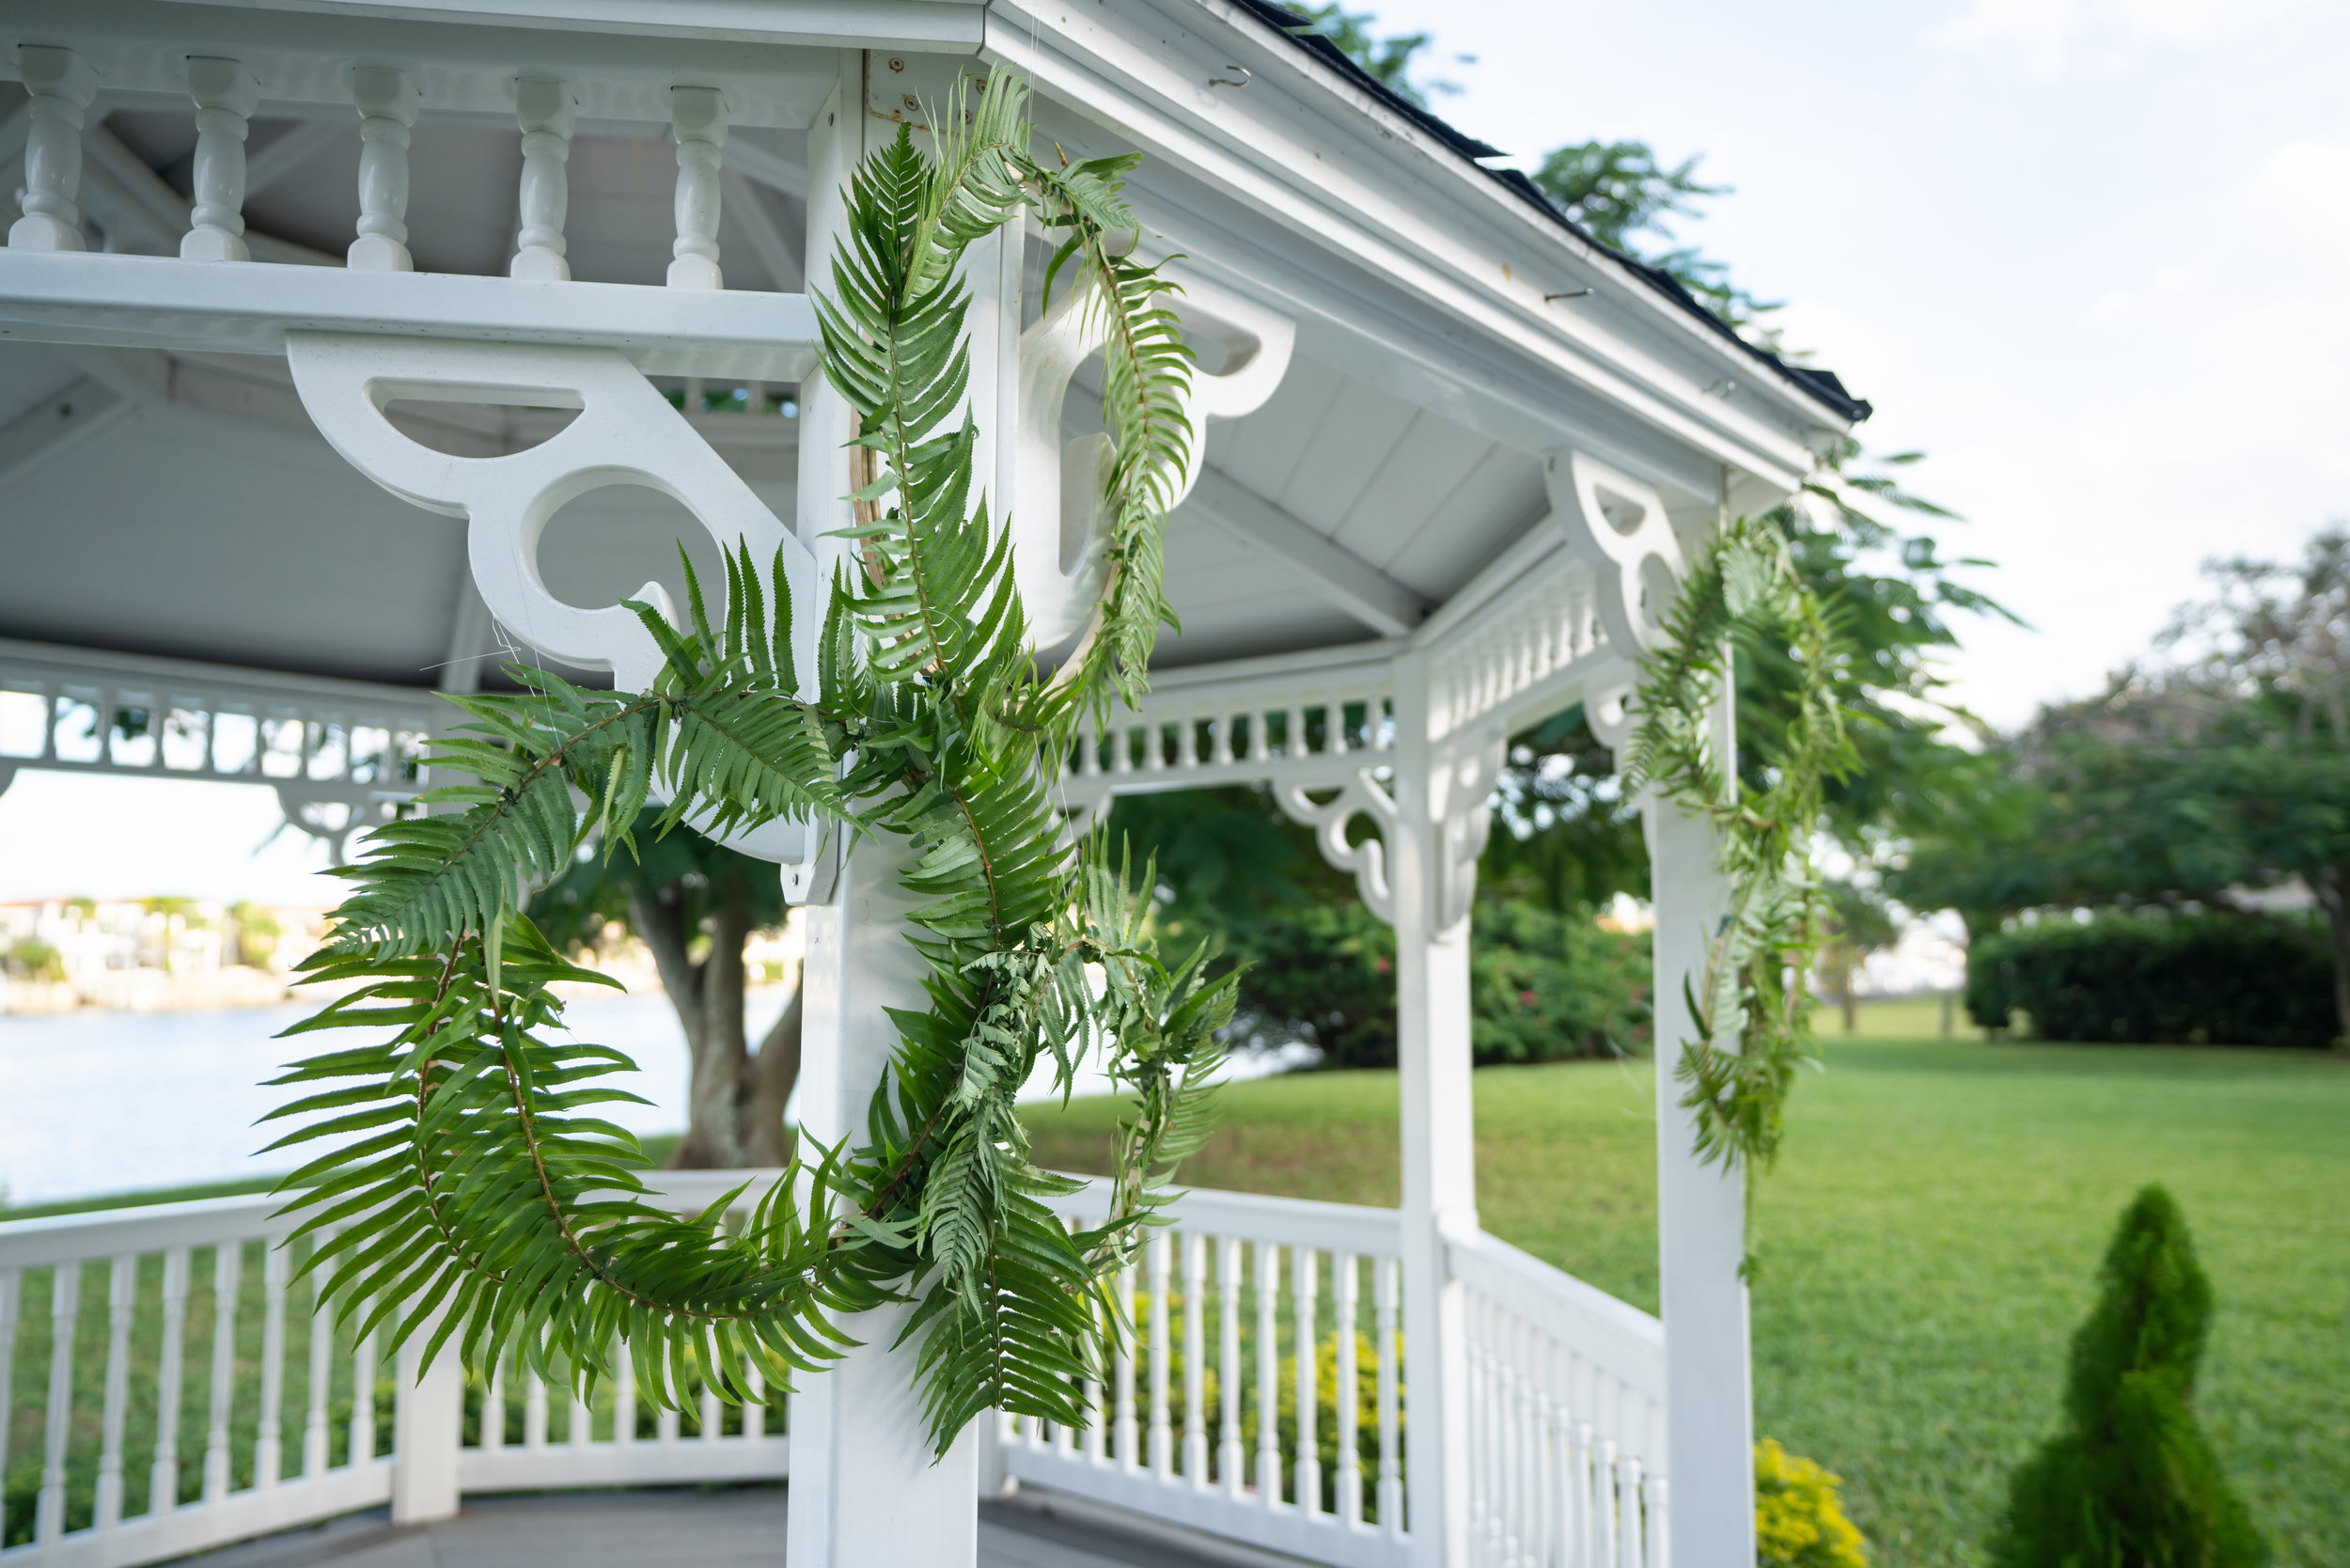 A personal touch of DIY fern frond embroidery hoops, were suspended at the ceremony gazebo.